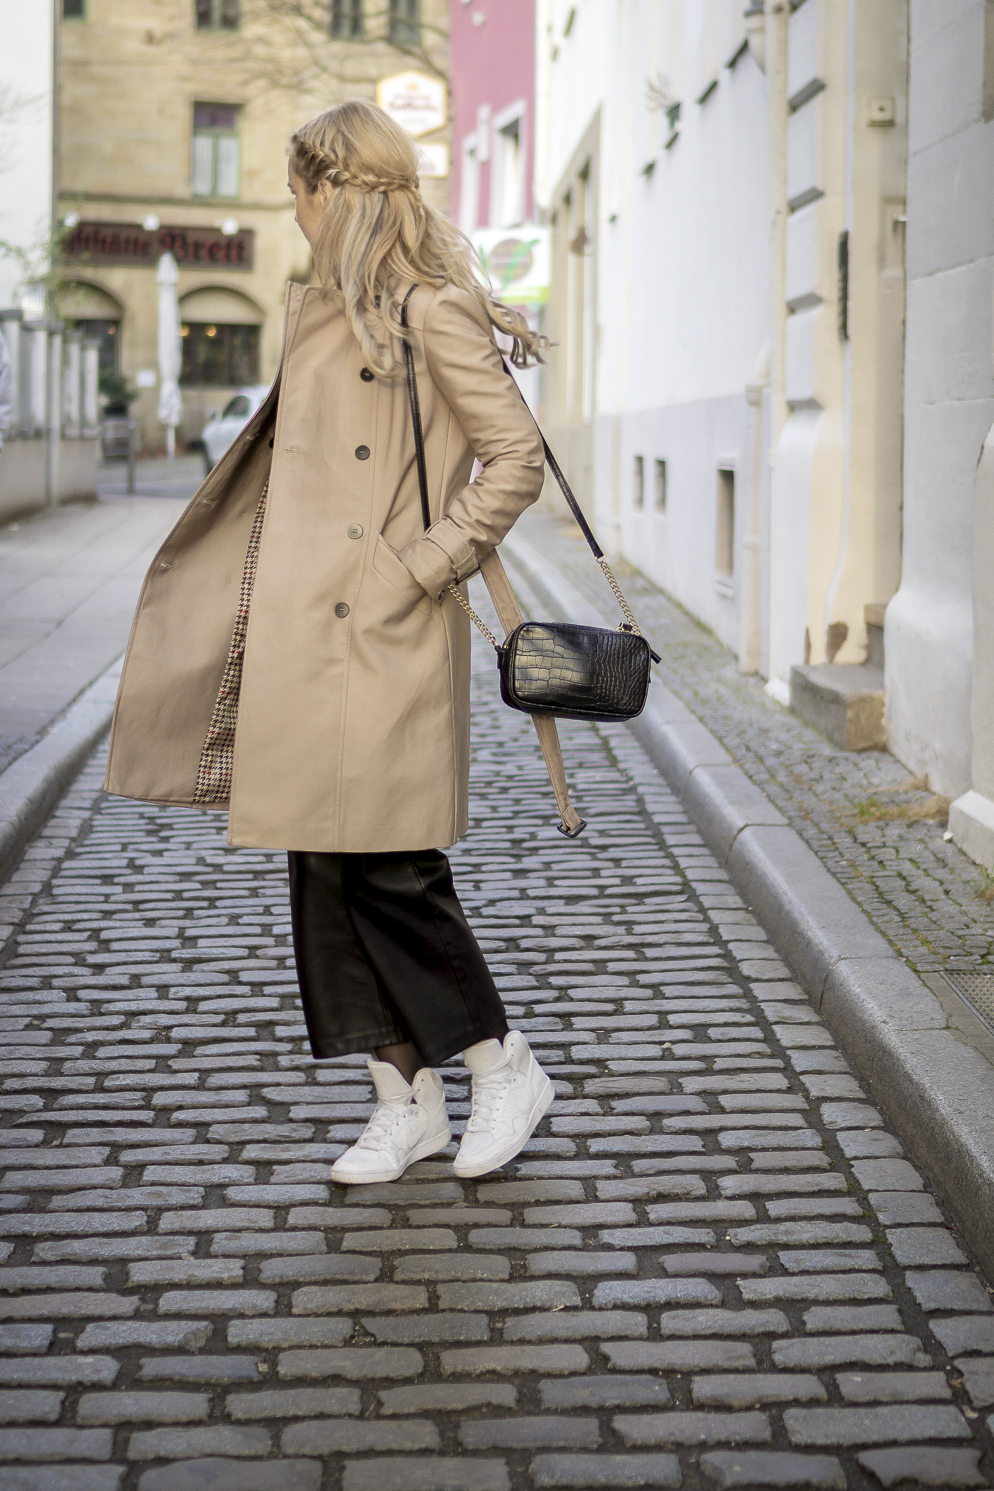 wearing beige trench coat from zara, OOTD outfit look